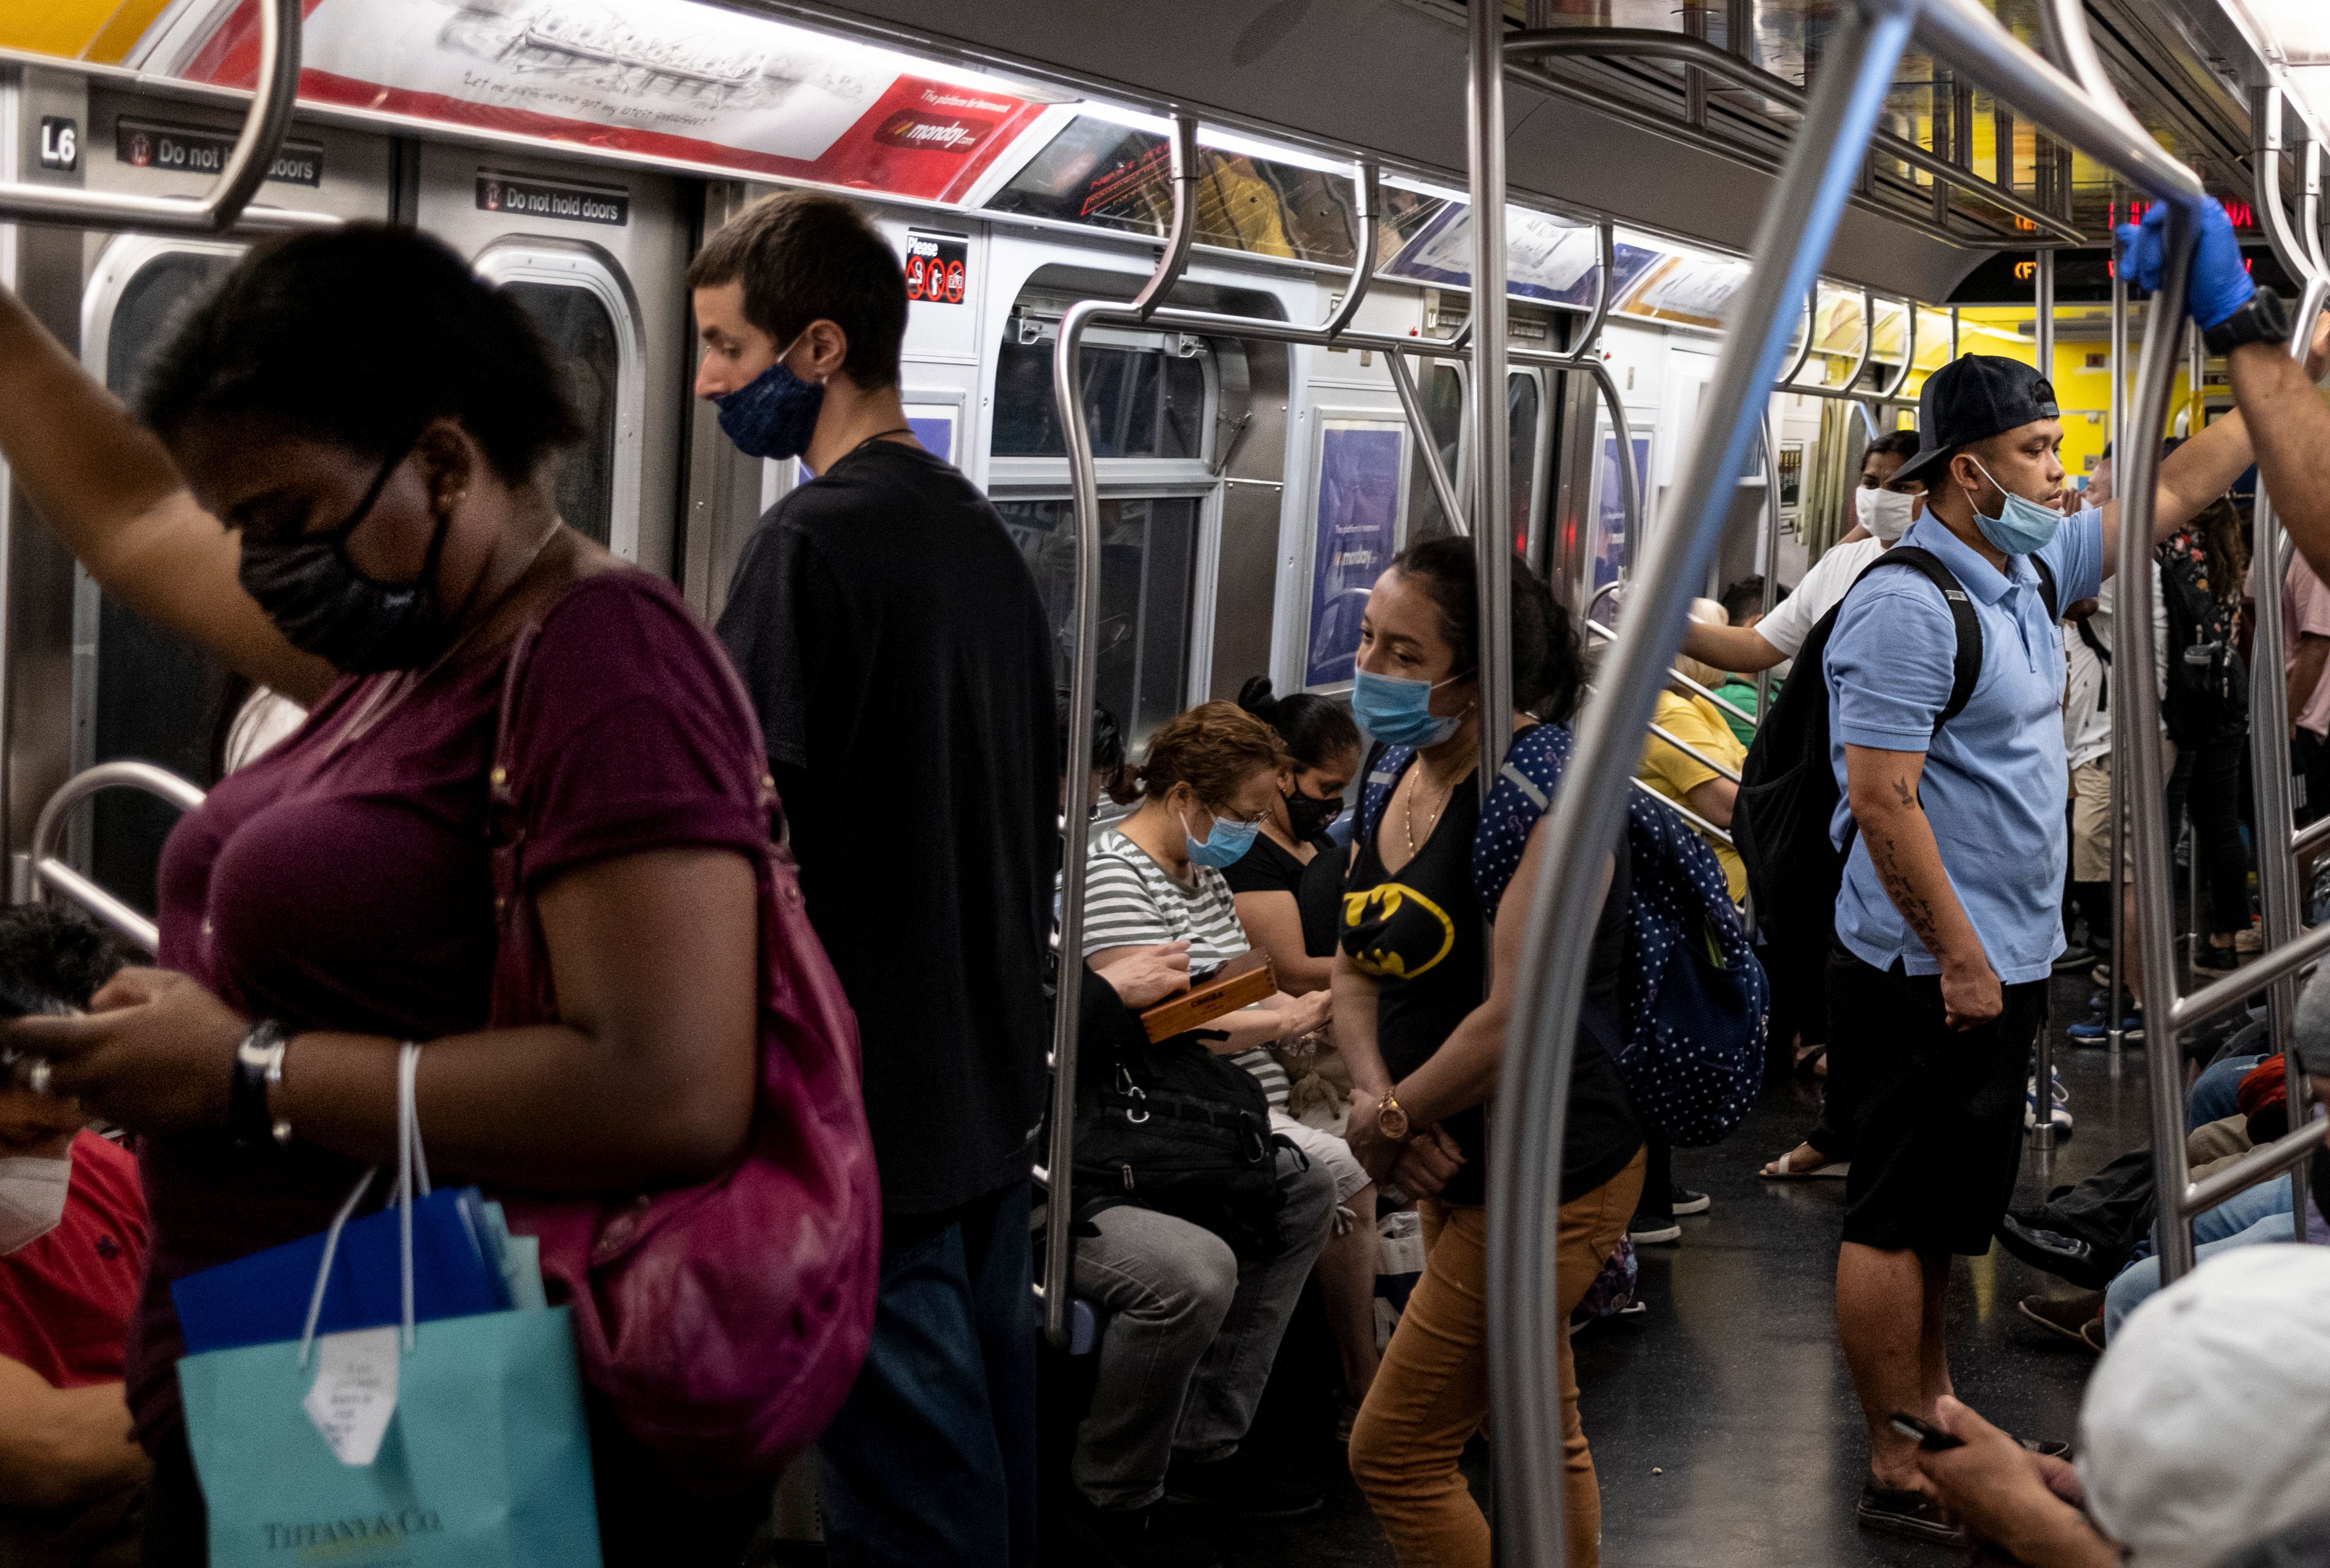 People ride the subway in New York on July 16.